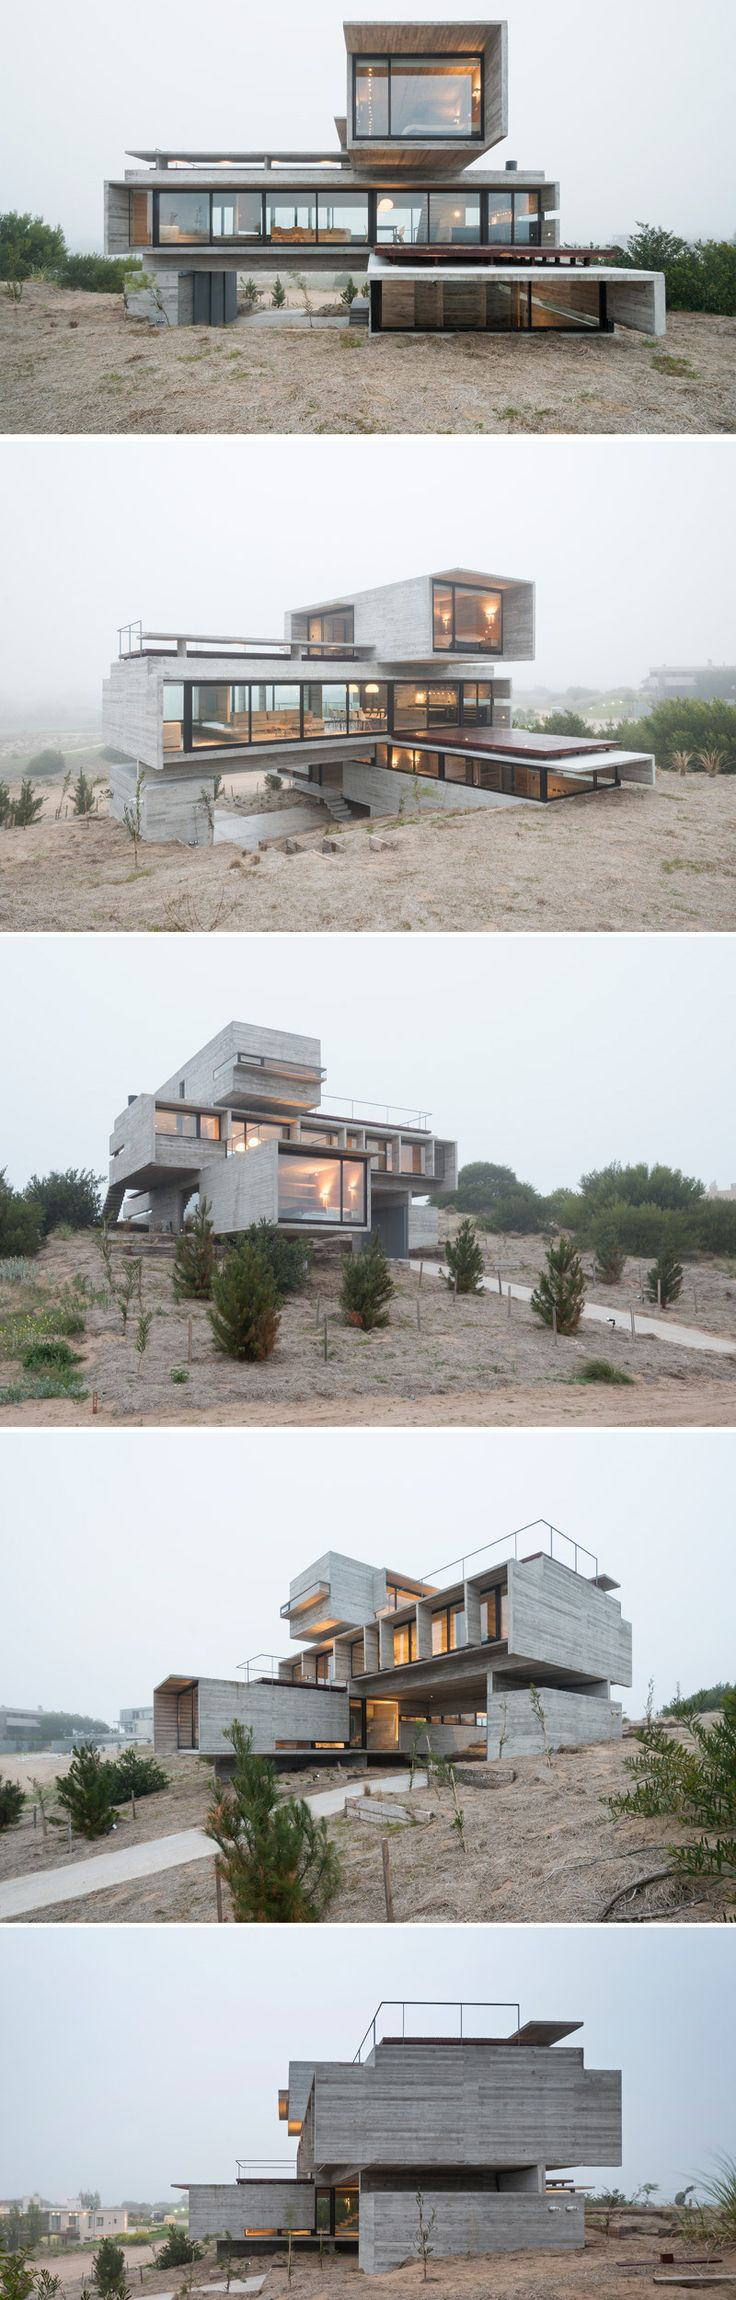 Your home for vacation amp prosperity - Architect Luciano Kruk Designs A House Made Of Three Stacked Forms Of Rough Unfinished Concrete Overlooking